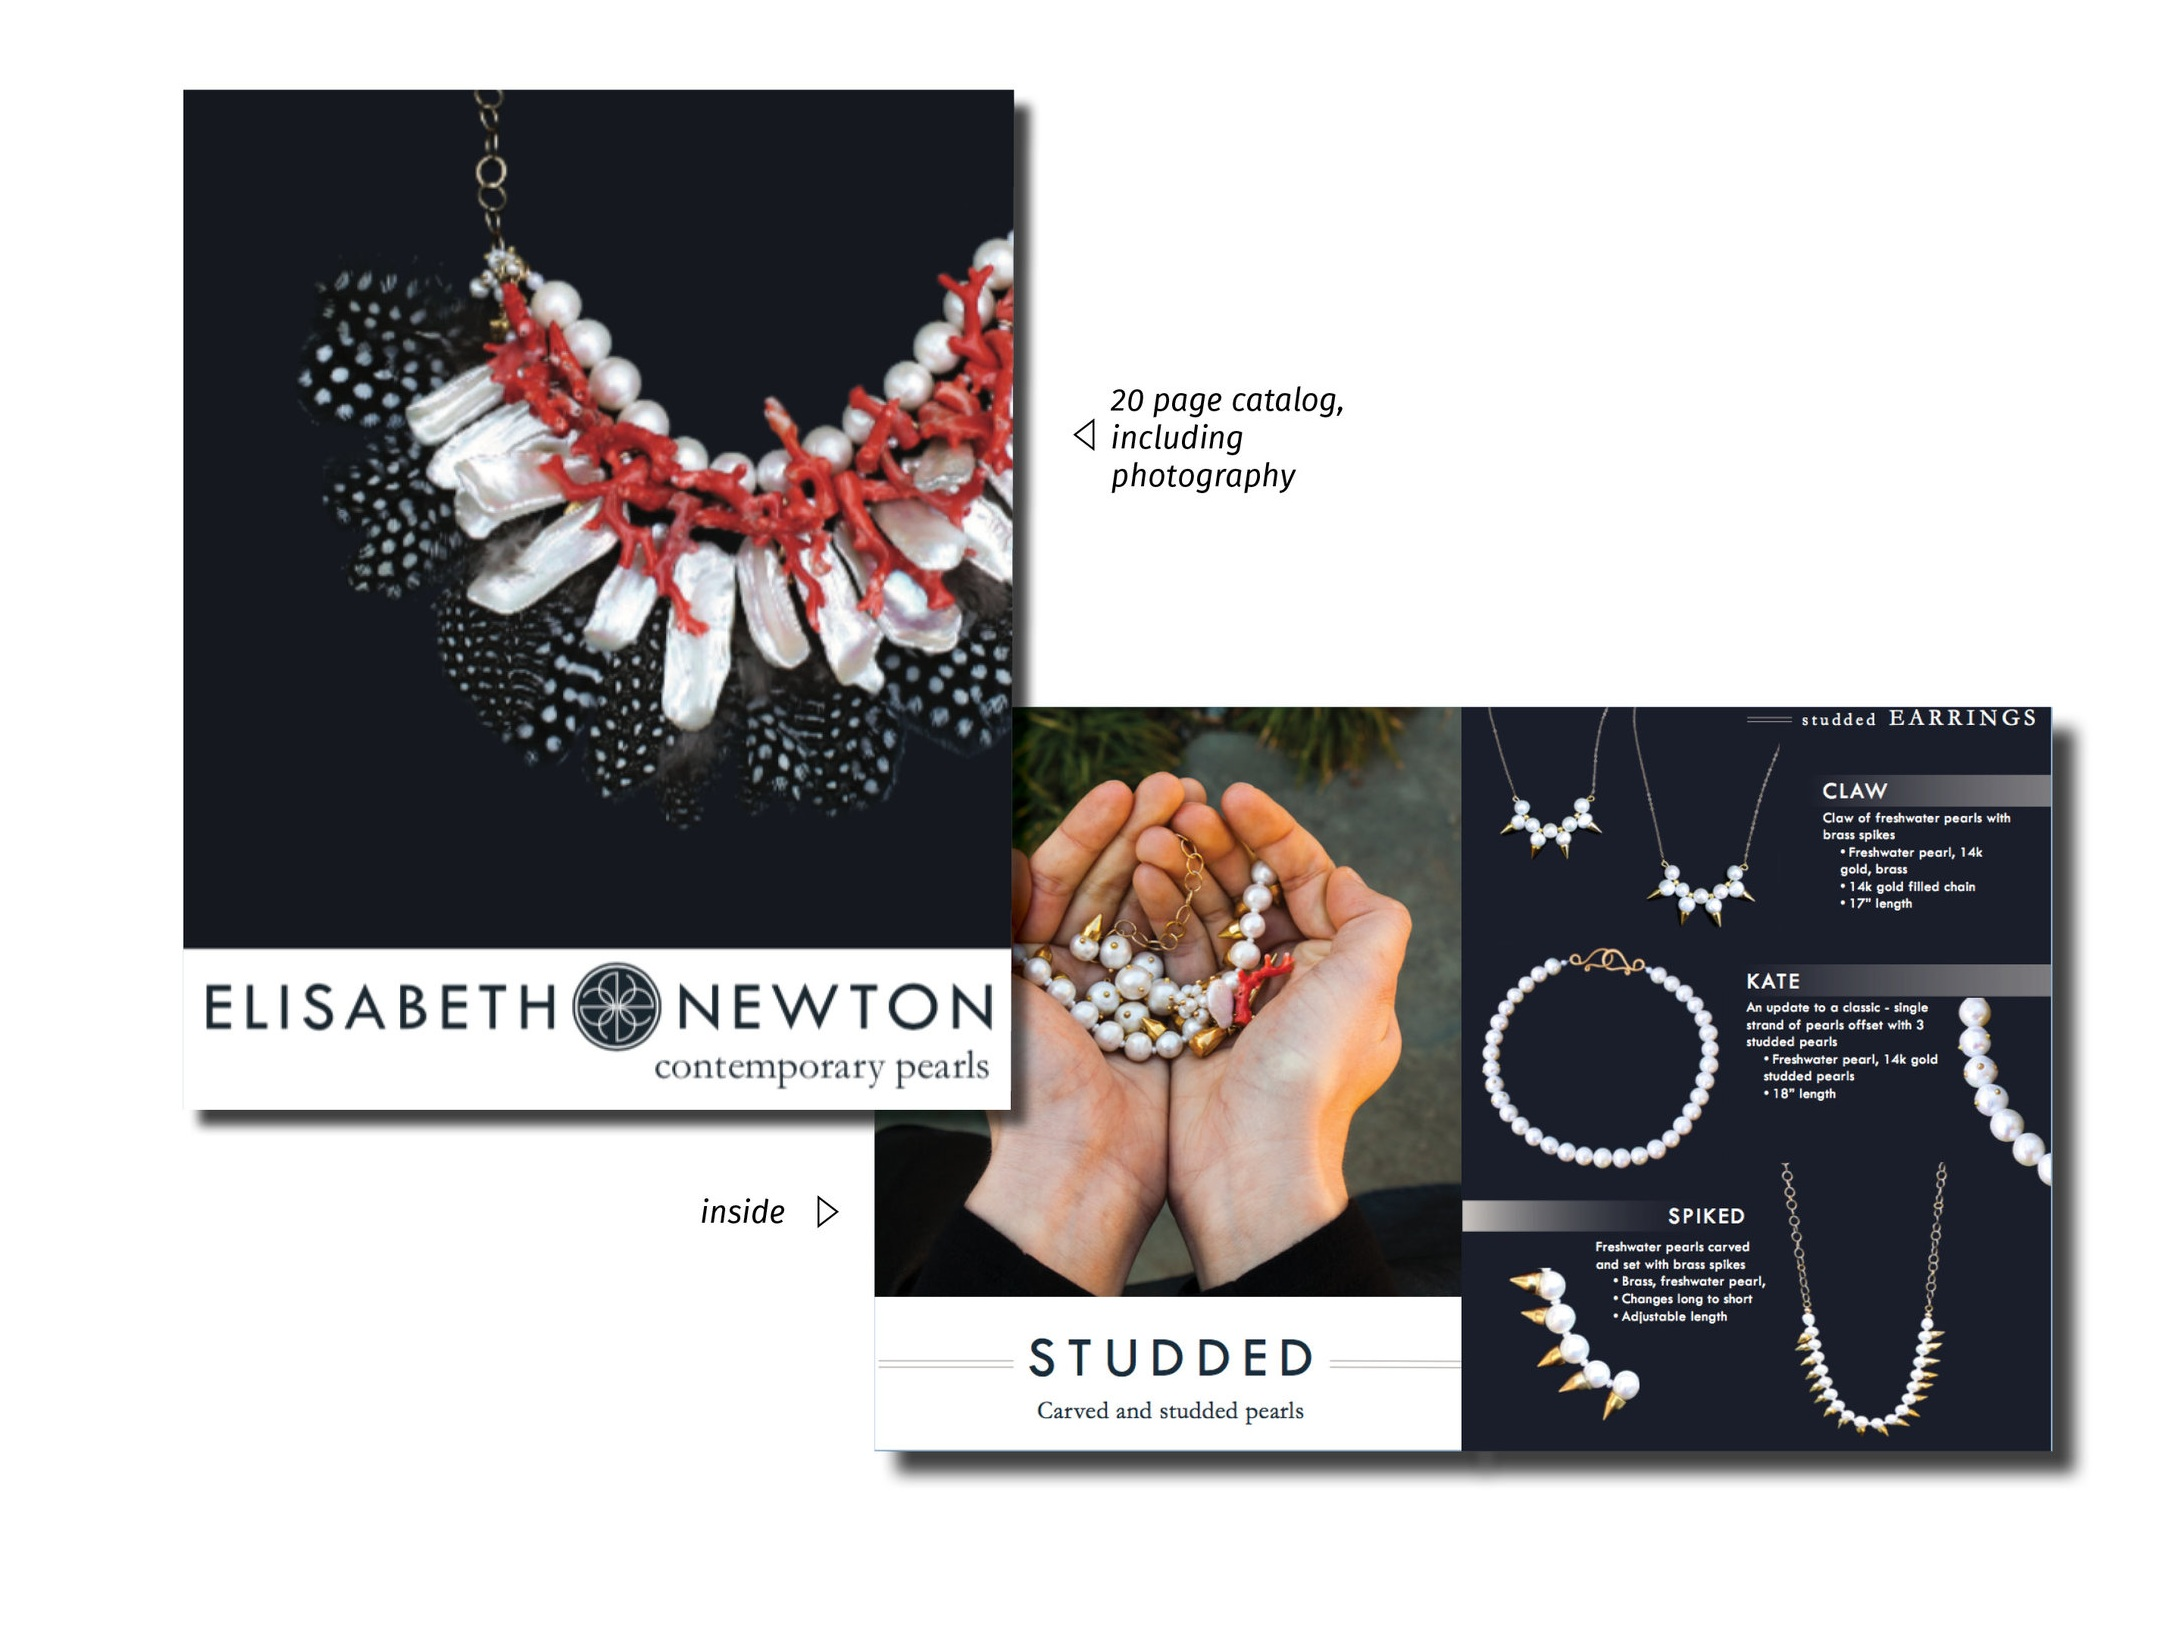 Catalog - I designed a wholesale catalog for B2B sales. Keeping the layout minimal and editing the photographs onto a dark, flattened background best showcased the pearls. All photography, art direction, layout, copy and designs are my own.